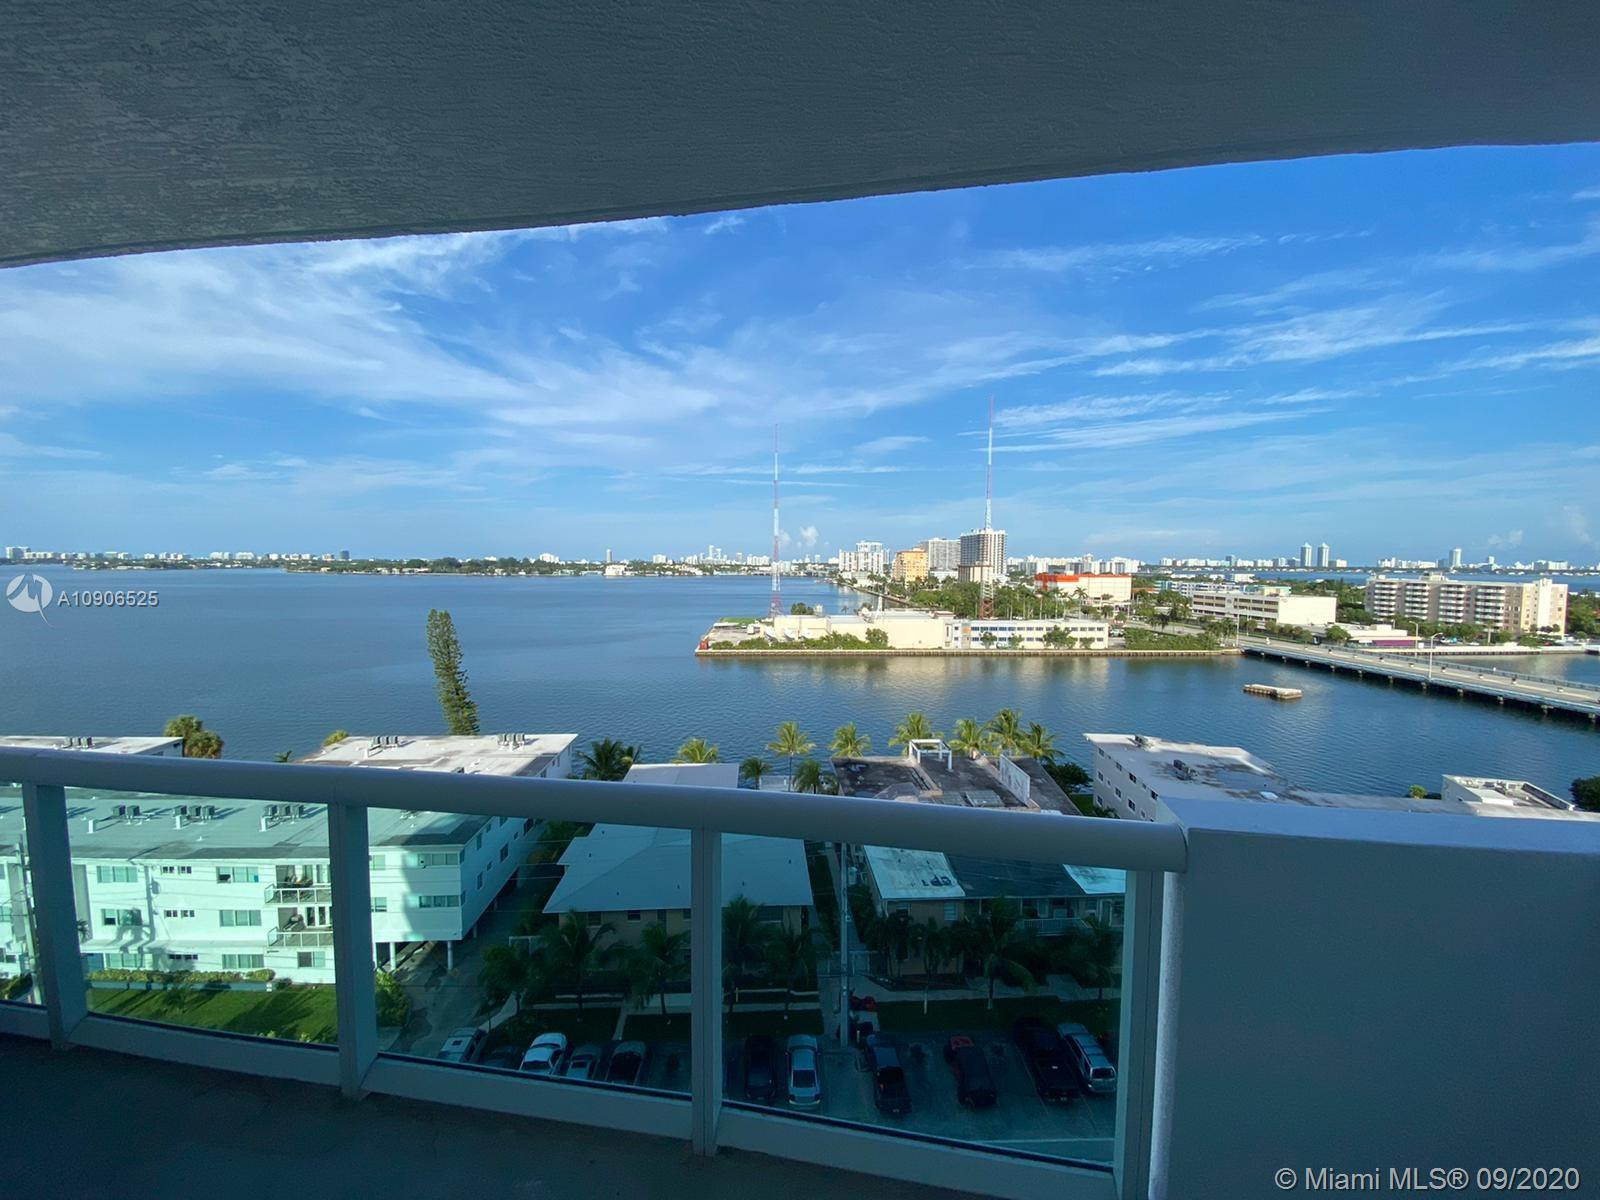 Stunning 2 Bed 2 Bath unit located at 360 Condo East Tower. With amazing views overlooking Biscayne Bay you can see from your living room. This unit has a bright, open layout that includes a spacious balcony and stainless steel appliances. Building offers incredible amenities; including 2 pools, a state of the art gym, sauna & locker rooms, 24 HR security, FREE Valet, and guest parking.